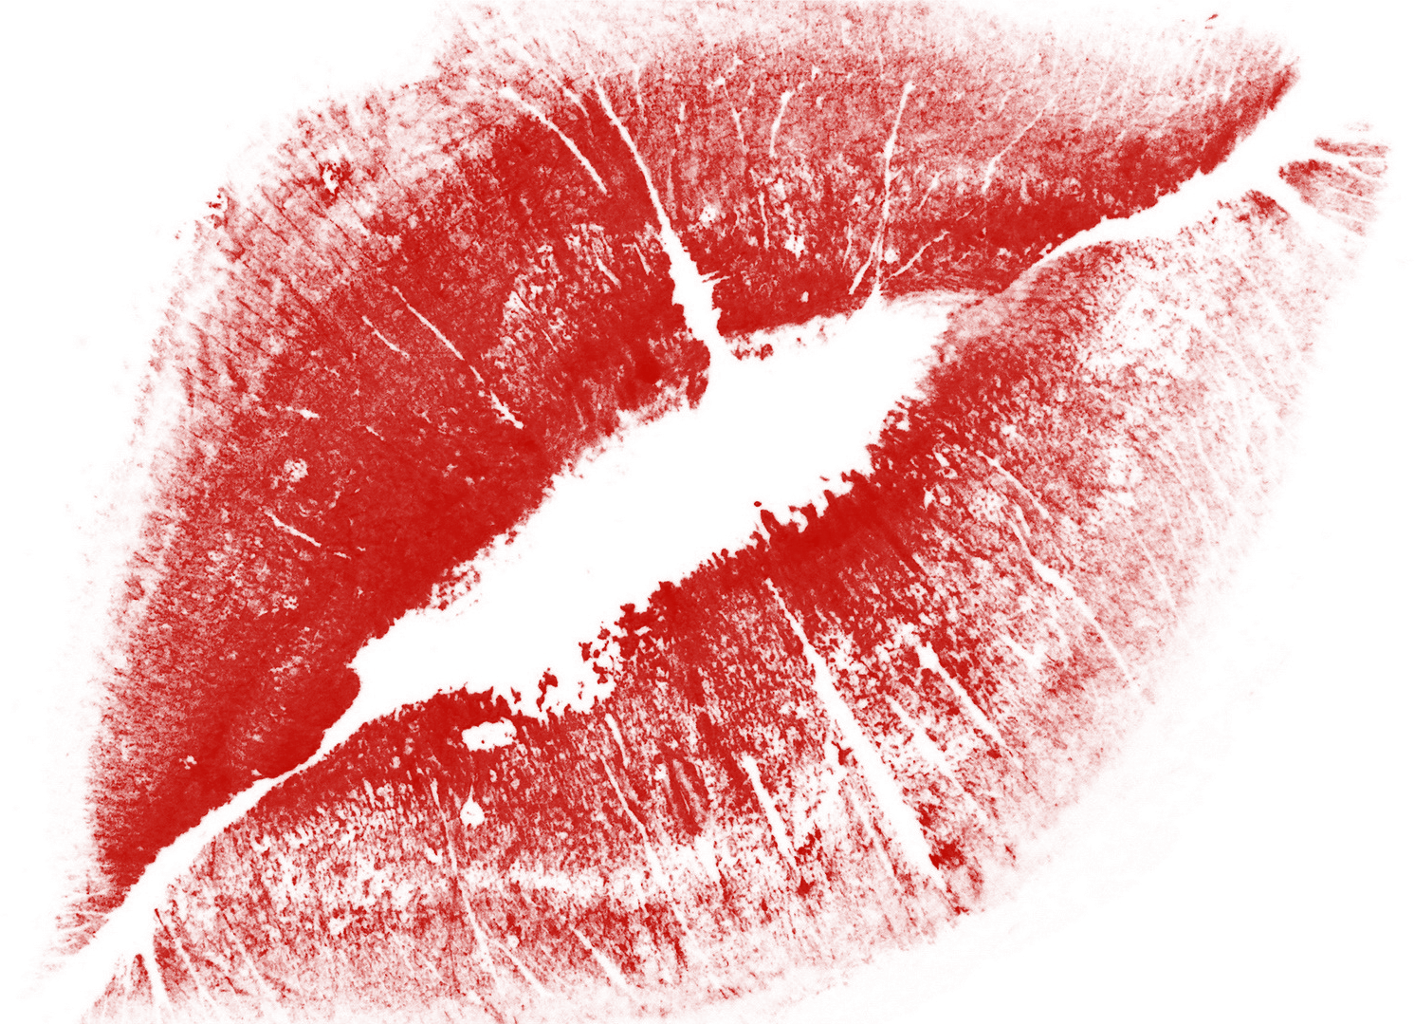 Red lips lip report. Kiss clipart smooch